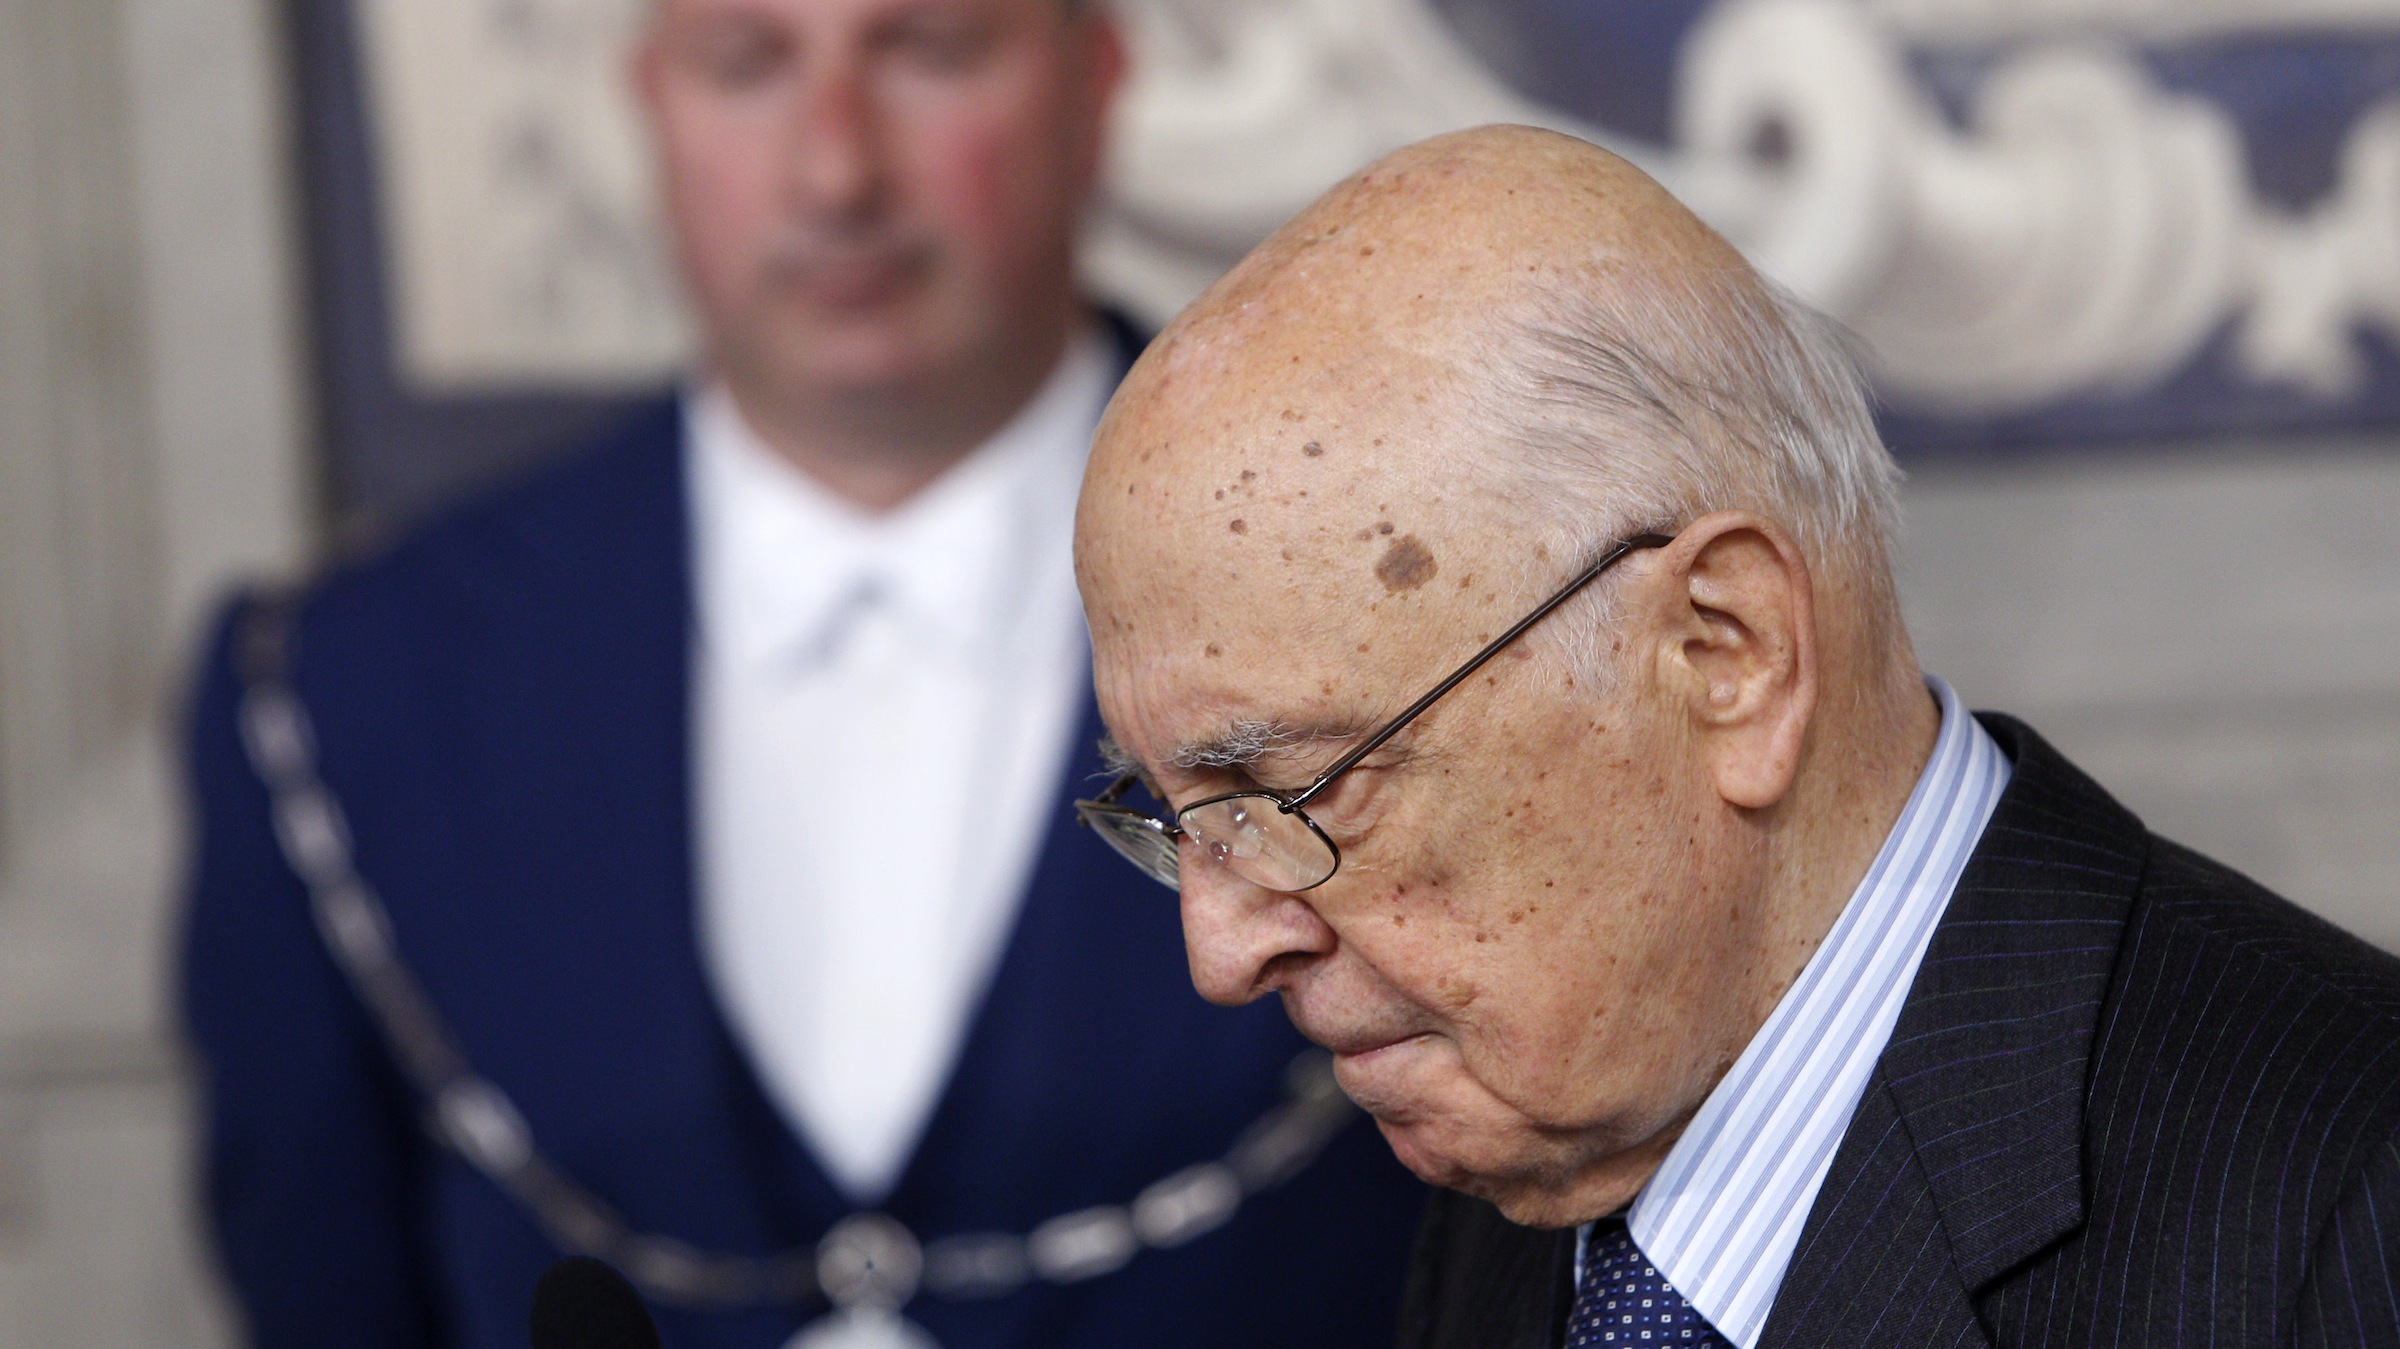 Italian President Giorgio Napolitano meets reporters at the Quirinale presidential palace in Rome, Saturday, March 30, 2013. Napolitano announced he's asked outside advisers to help him end the political gridlock that has prevented the formation of a government more than a month after inconclusive elections. (AP Photo/Riccardo De Luca)